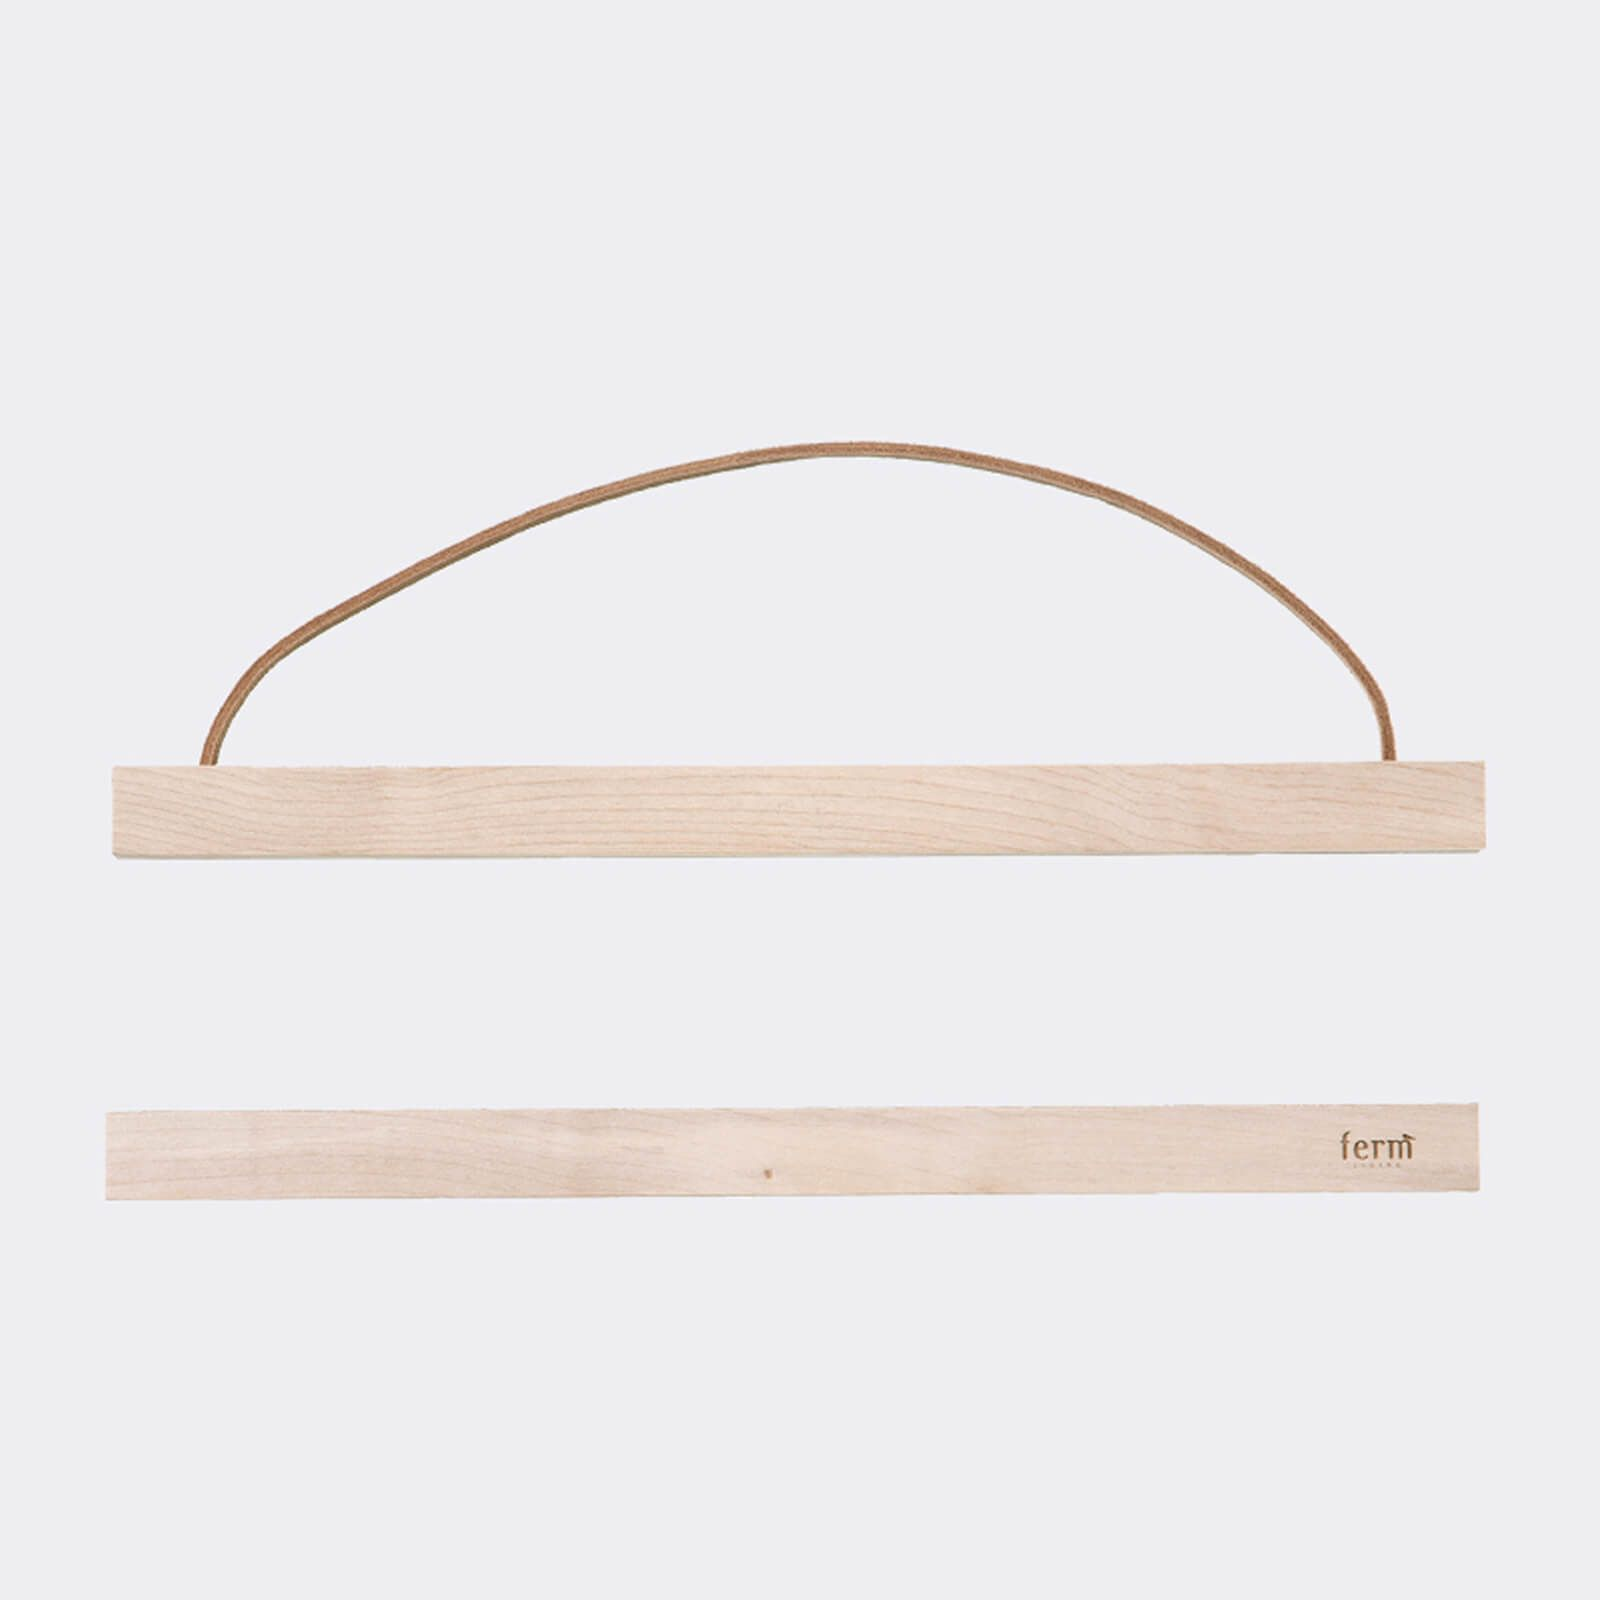 simple wood picture frames. Large Simple Wooden Frame: This Frame Will Make Your Favourite Illustrations, Artwork Or Pictures Look Stunning On The Wall. Wood Picture Frames